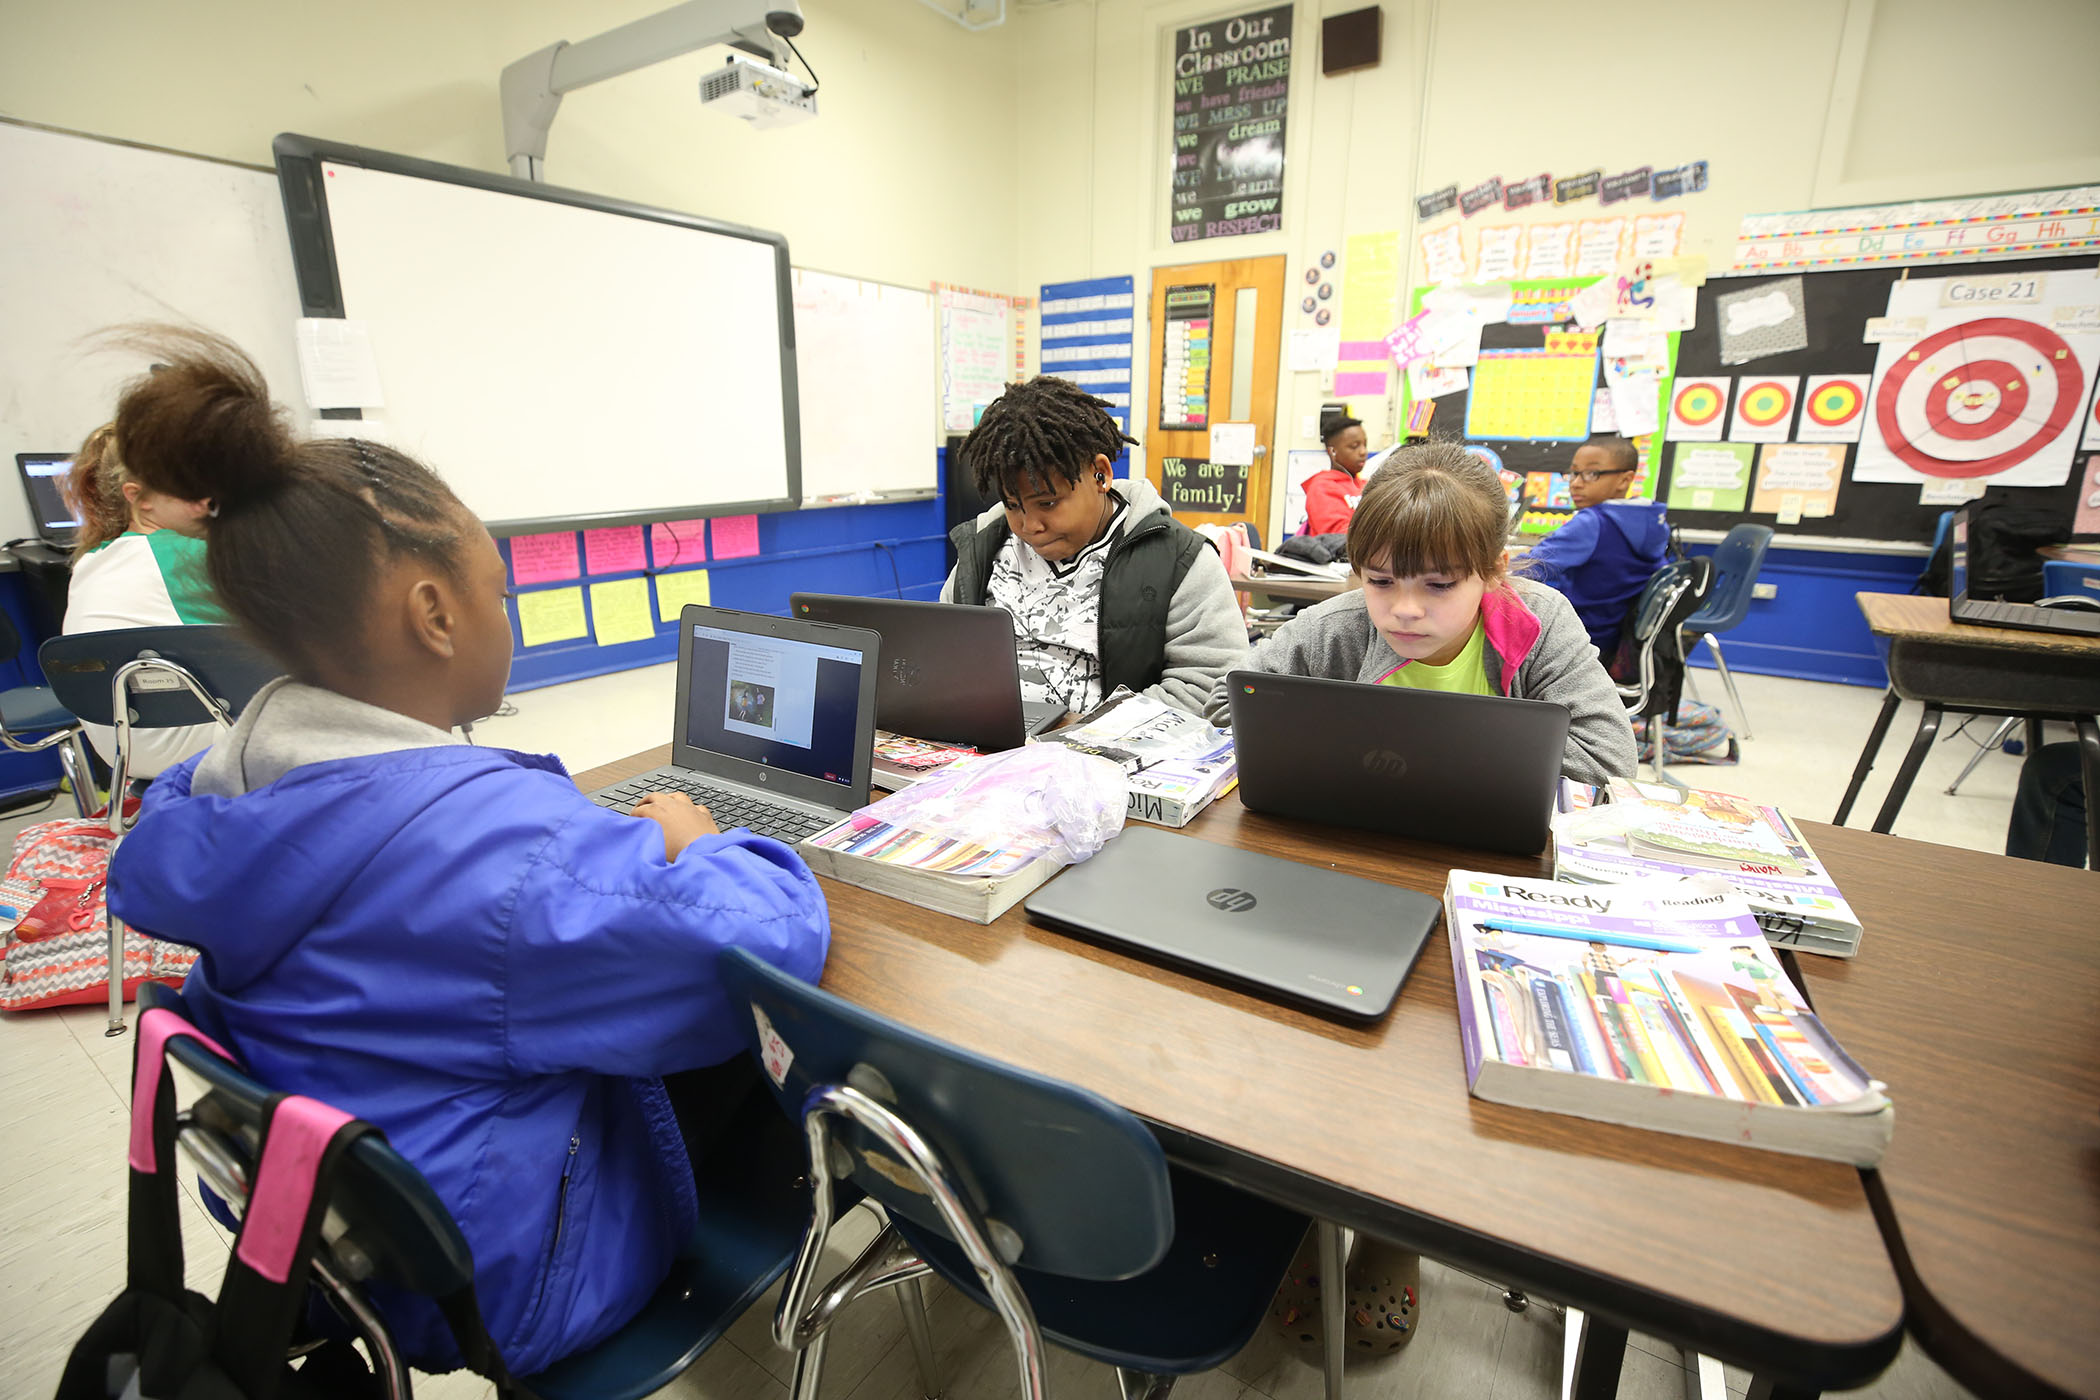 4th grade students work on their computers.